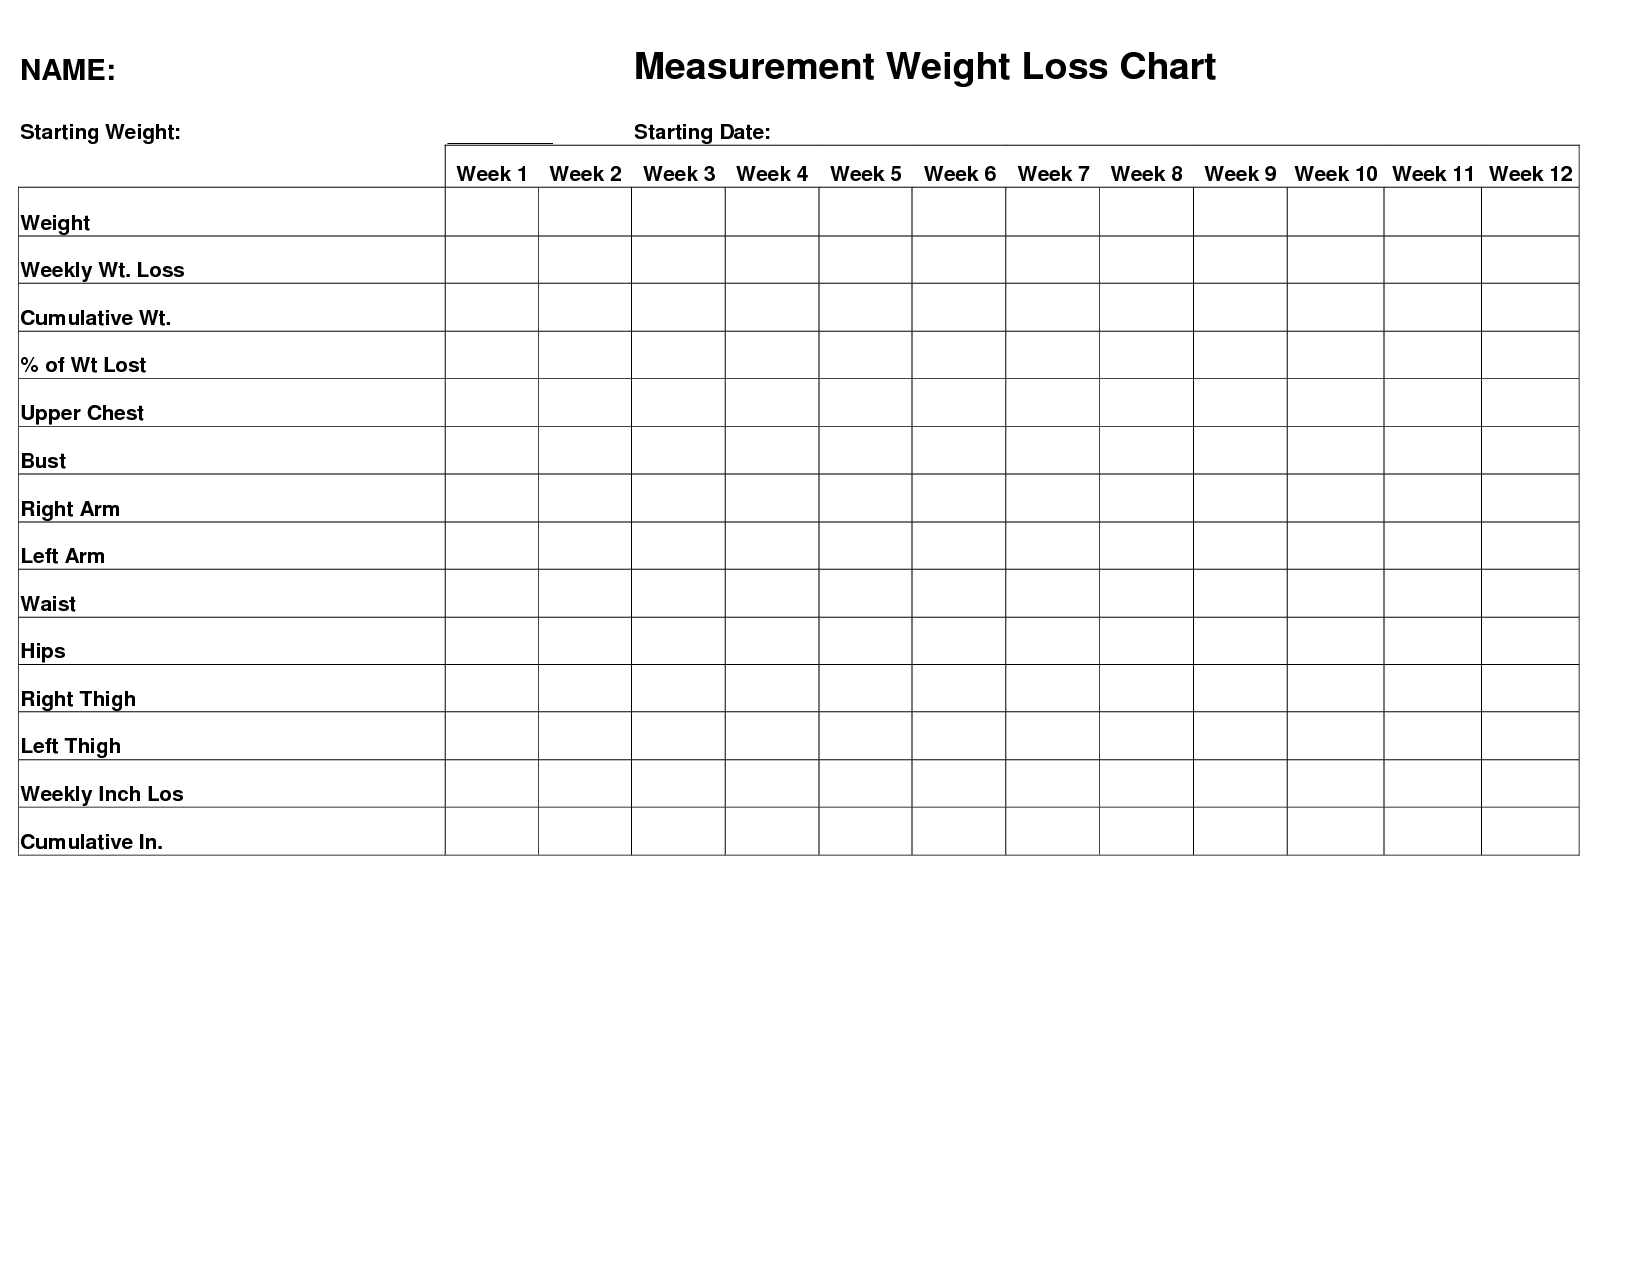 Stupendous image with regard to printable weight loss measurement chart